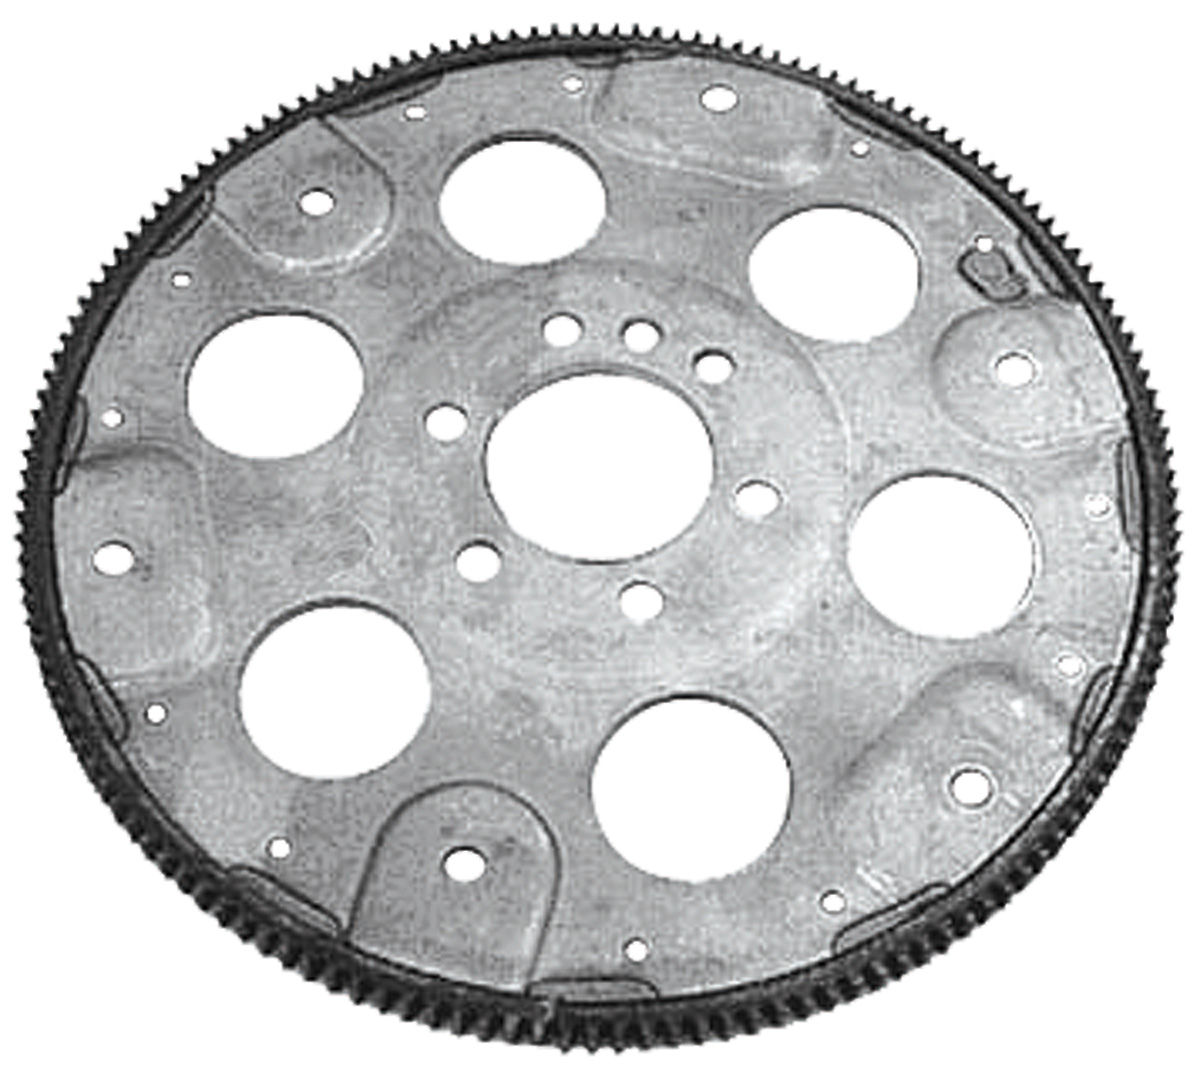 Flexplate, Small Block Chevrolet, 153 Tooth, 1969-85 GM